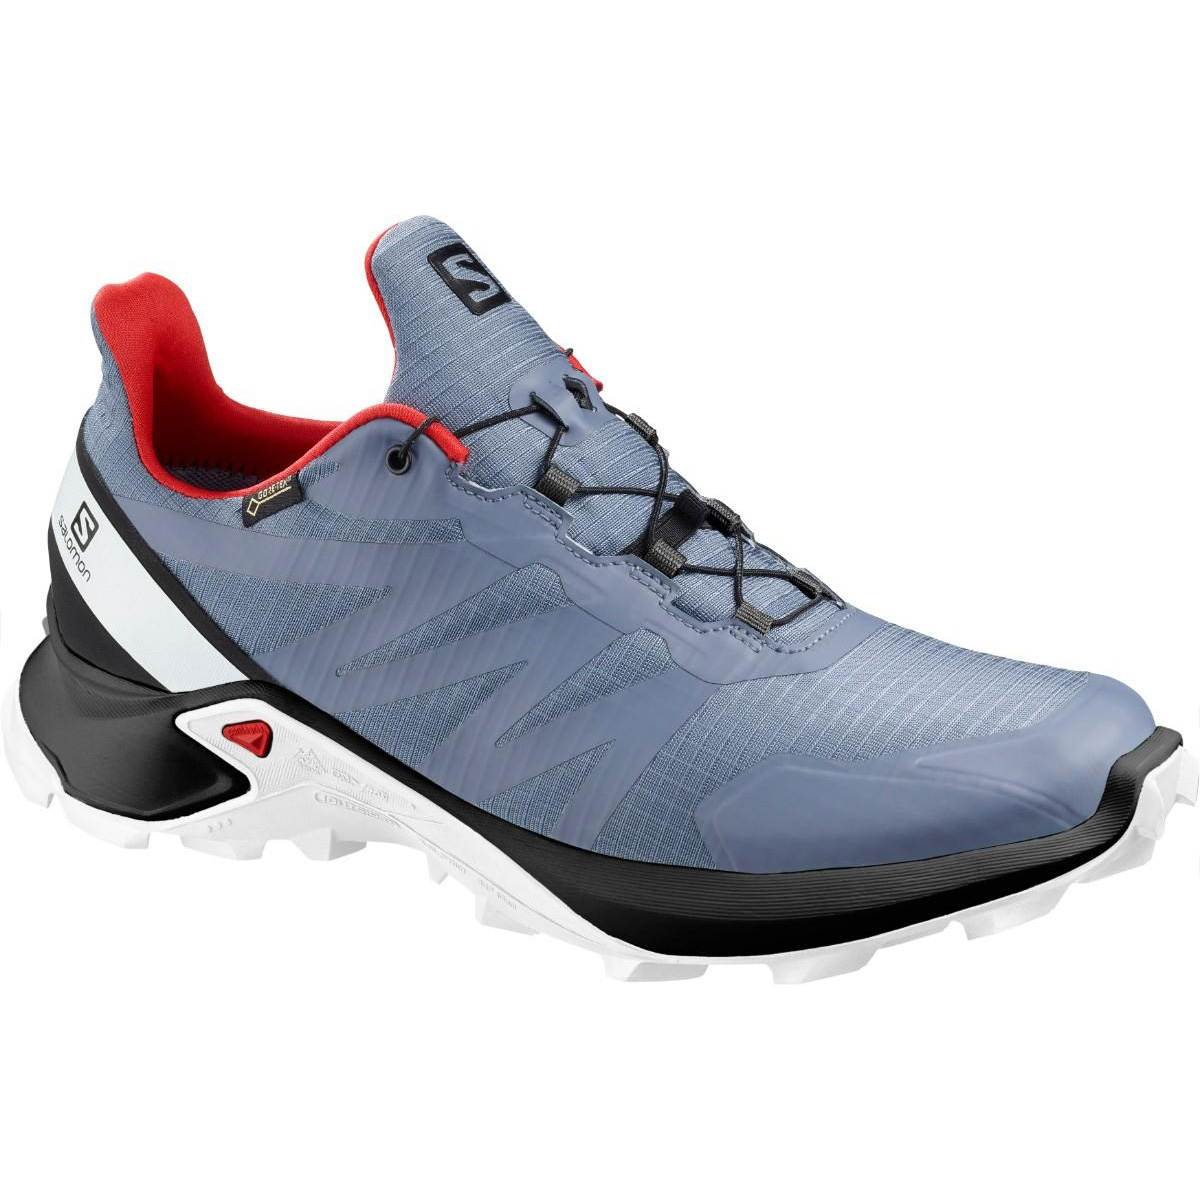 Salomon Pantofi alergare Salomon SUPERCROSS GTX - Bleu